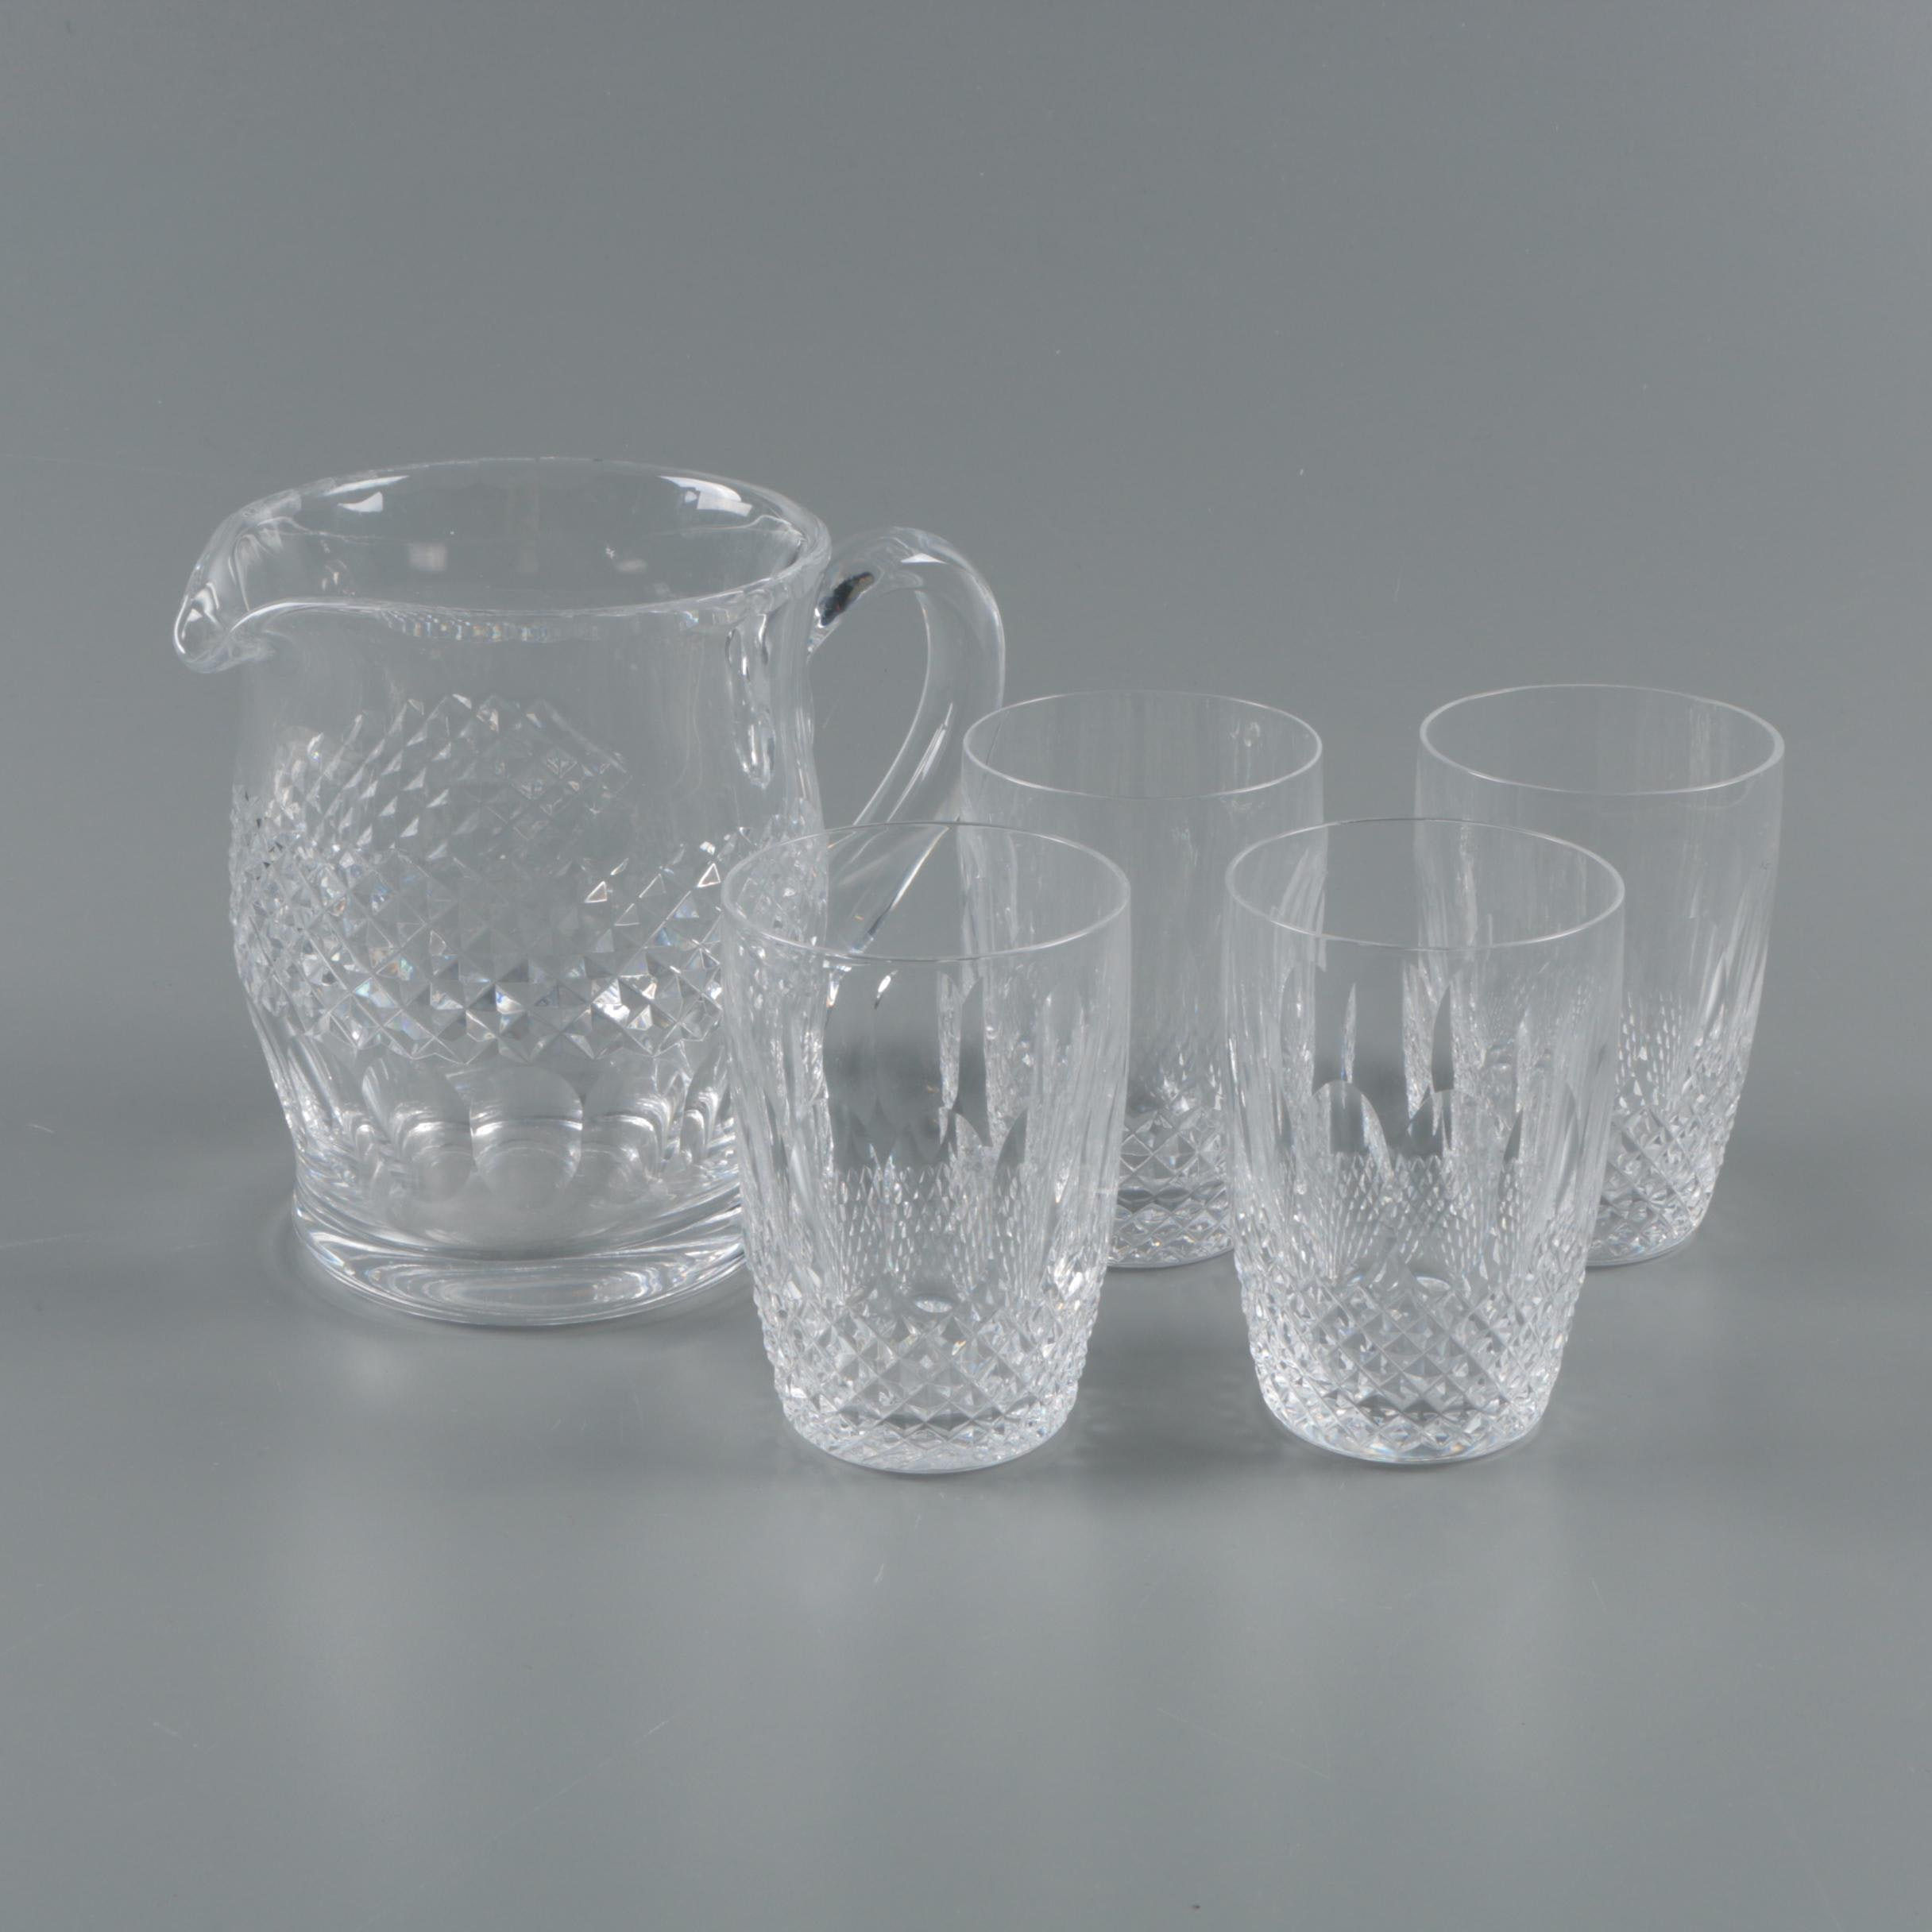 """Waterford Crystal """"Colleen Short Stem"""" Pitcher and Tumblers"""